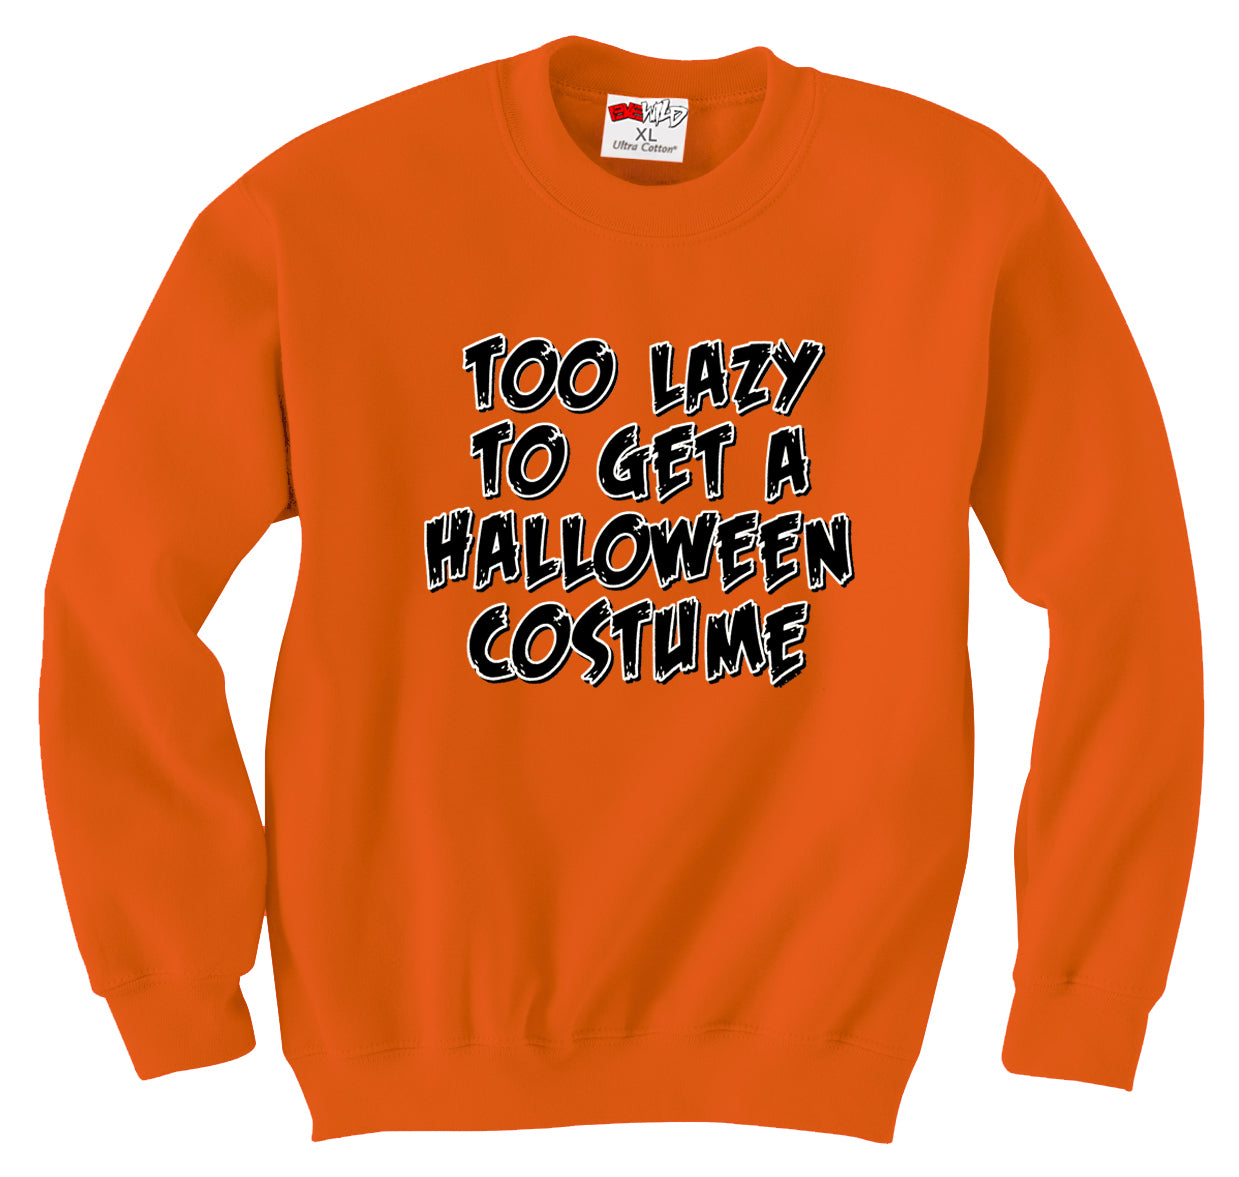 Too Lazy To Get a Halloween Costume Crew Neck Sweatshirt